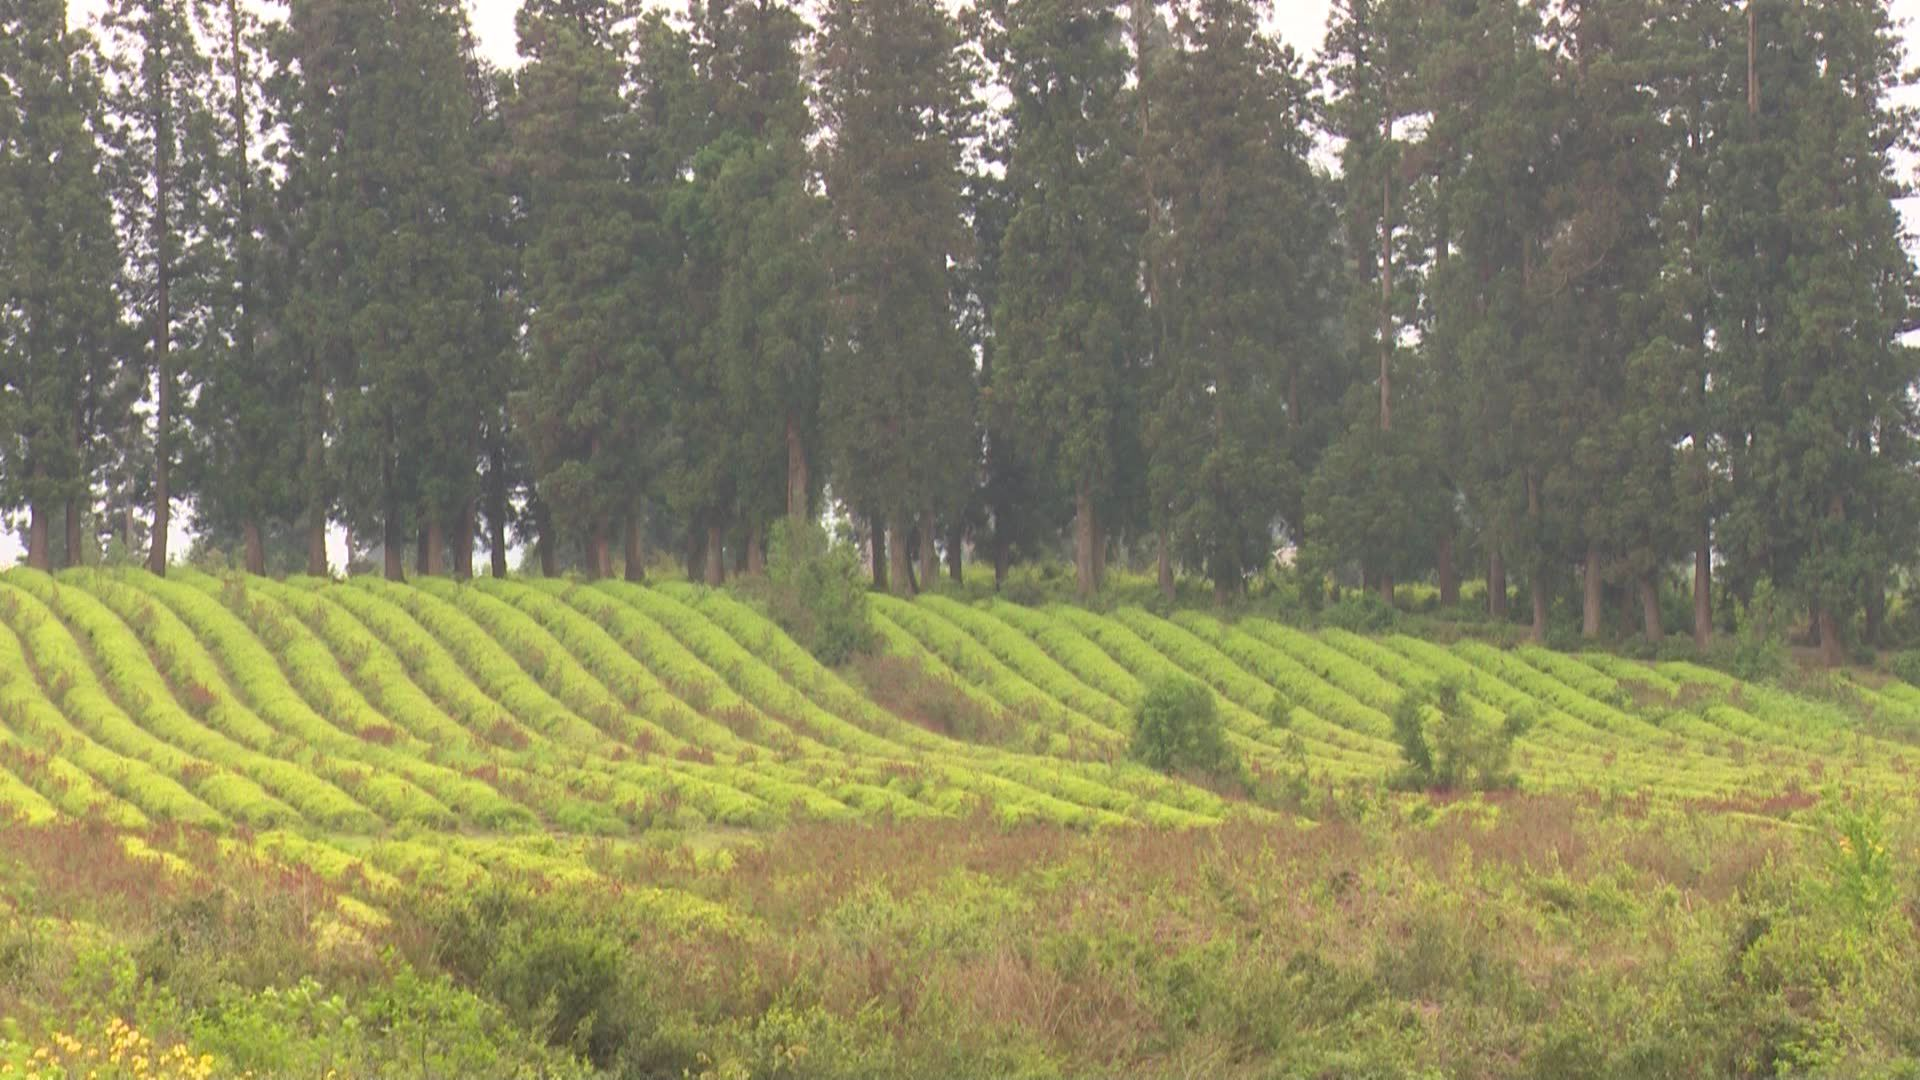 The government of Ajara is going to build tea plantation